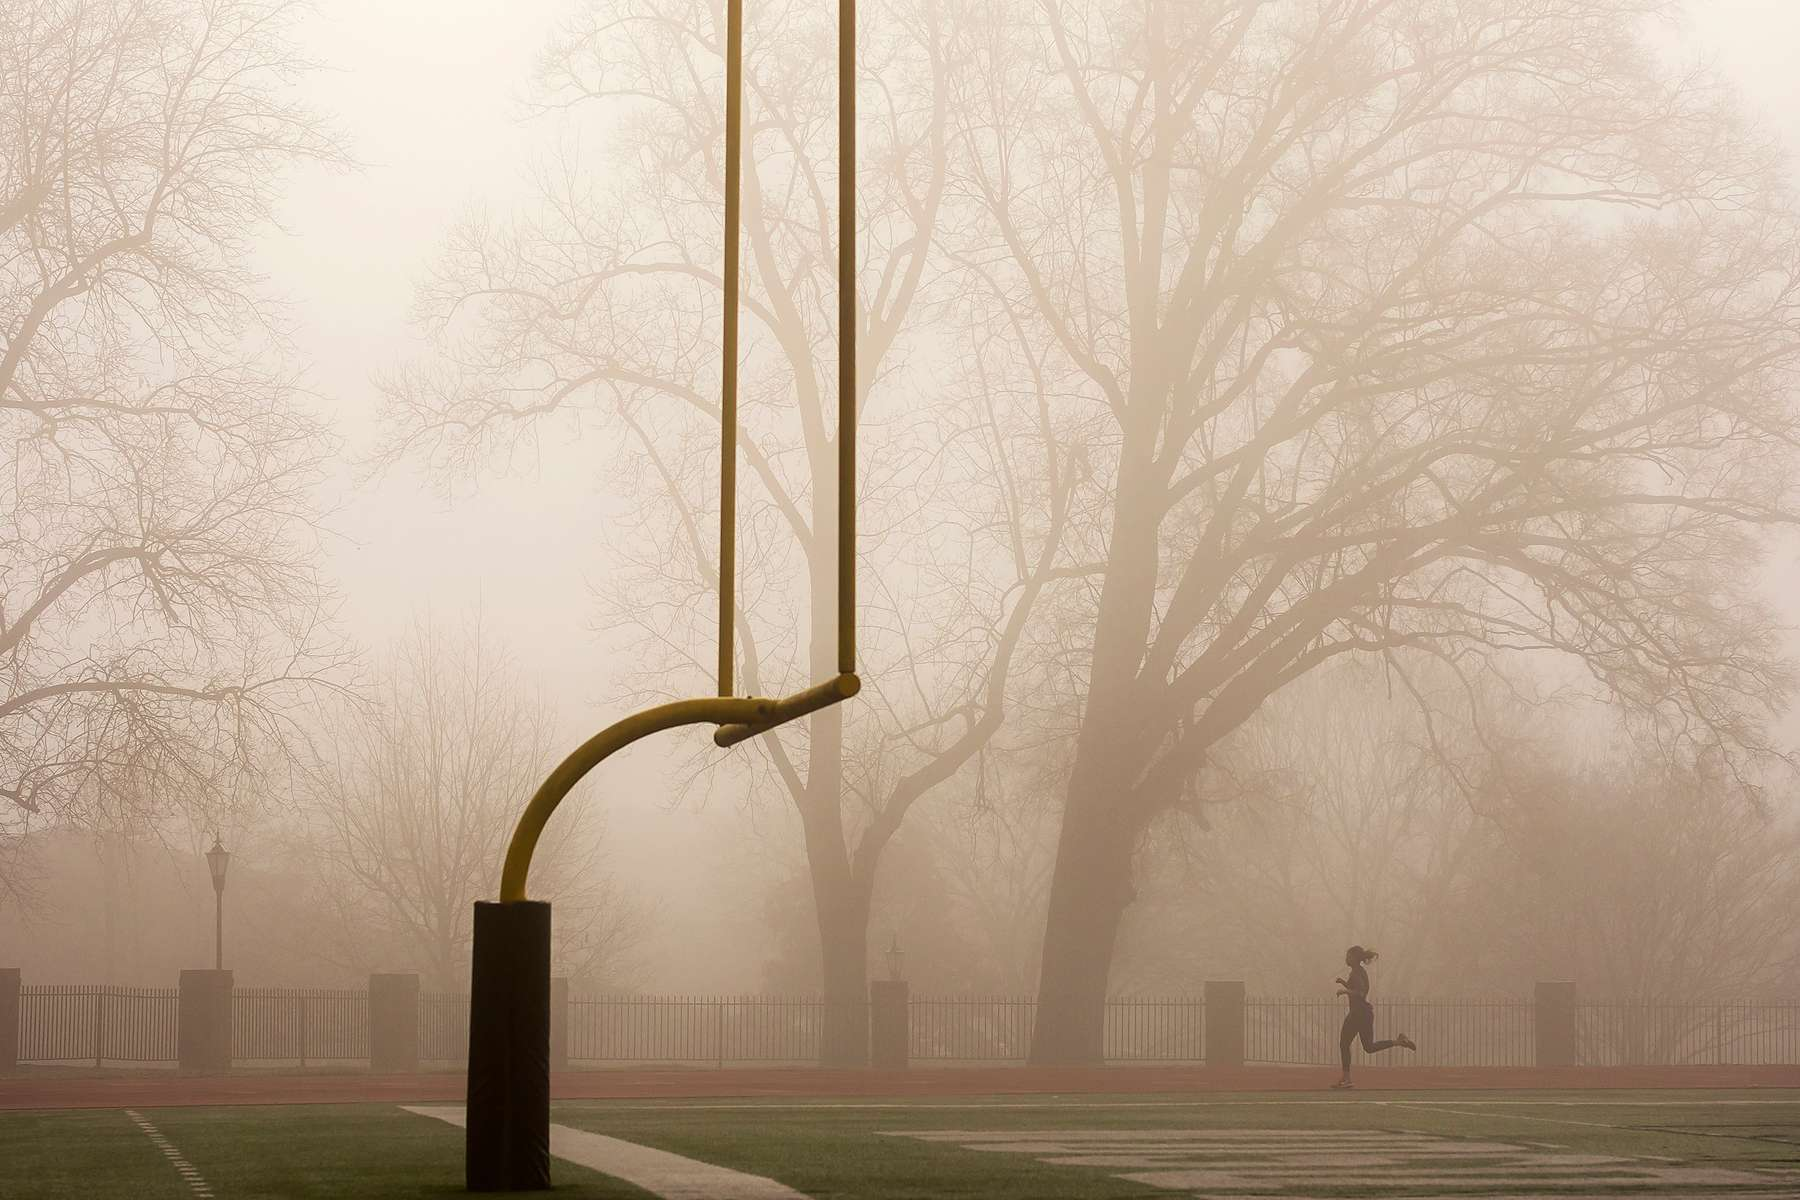 Foggy morning on campus